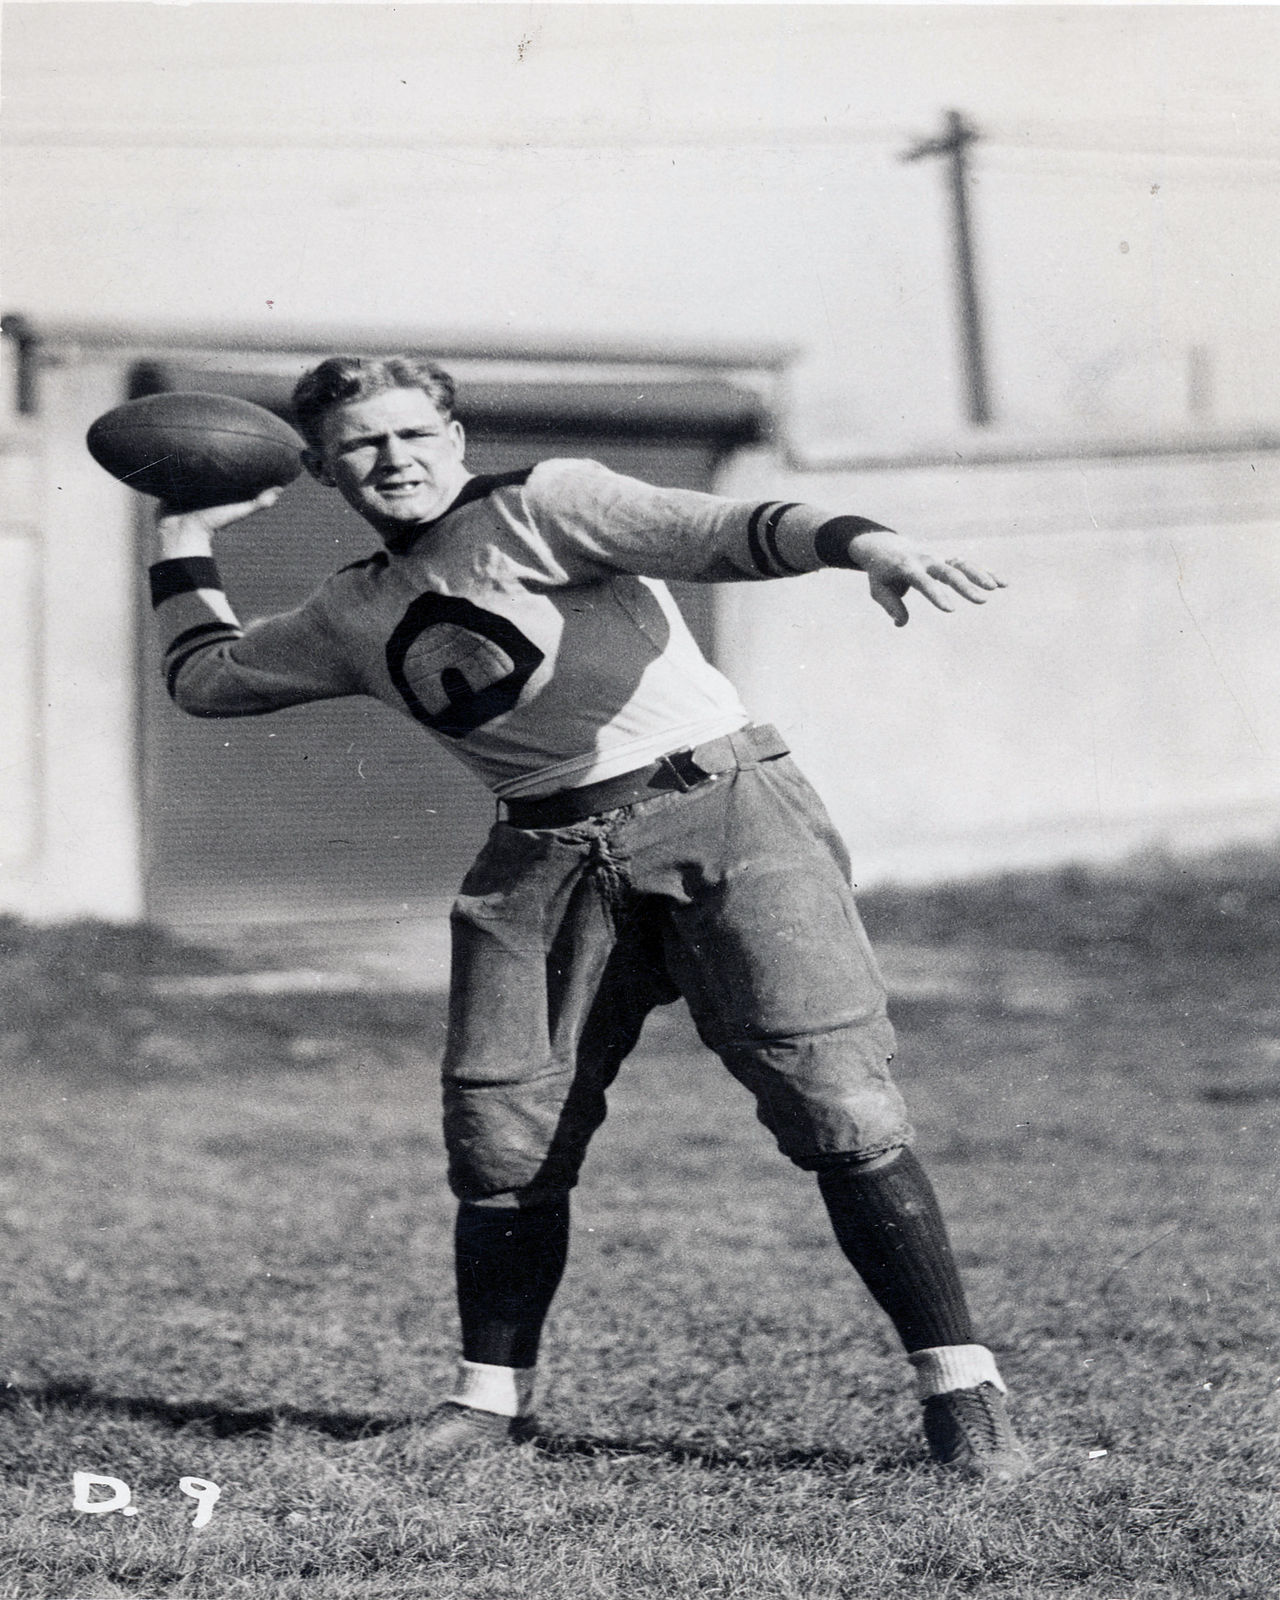 <p><strong>Ernie Nevers</strong> scored every point in the Chicago Cardinals 40-6 romp over the cross-town Bears in 1929. Nevers scored six touchdowns and four extra points to set the longest standing record in NFL history. </p>